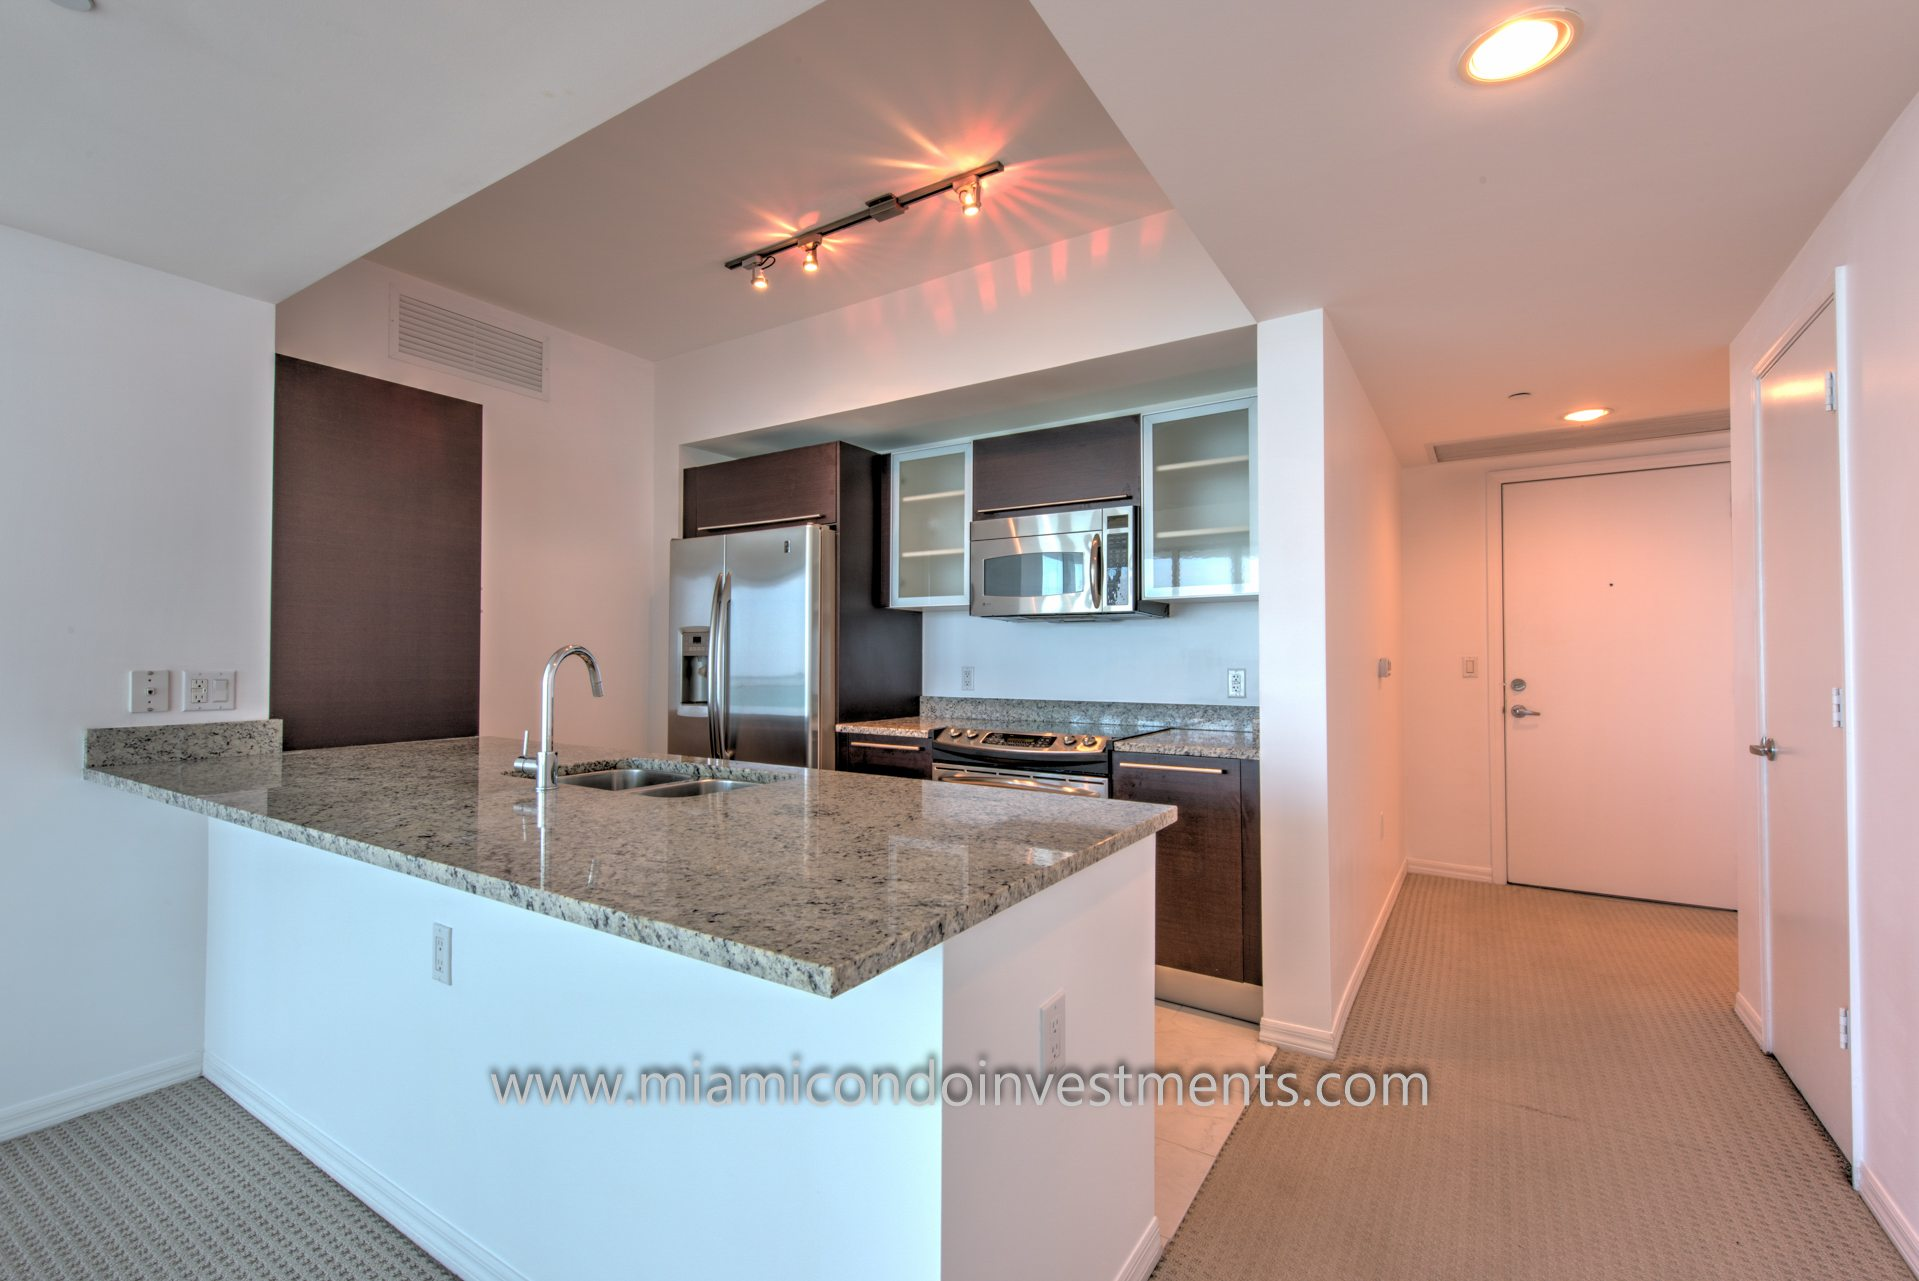 The Plaza on Brickell west tower kitchen